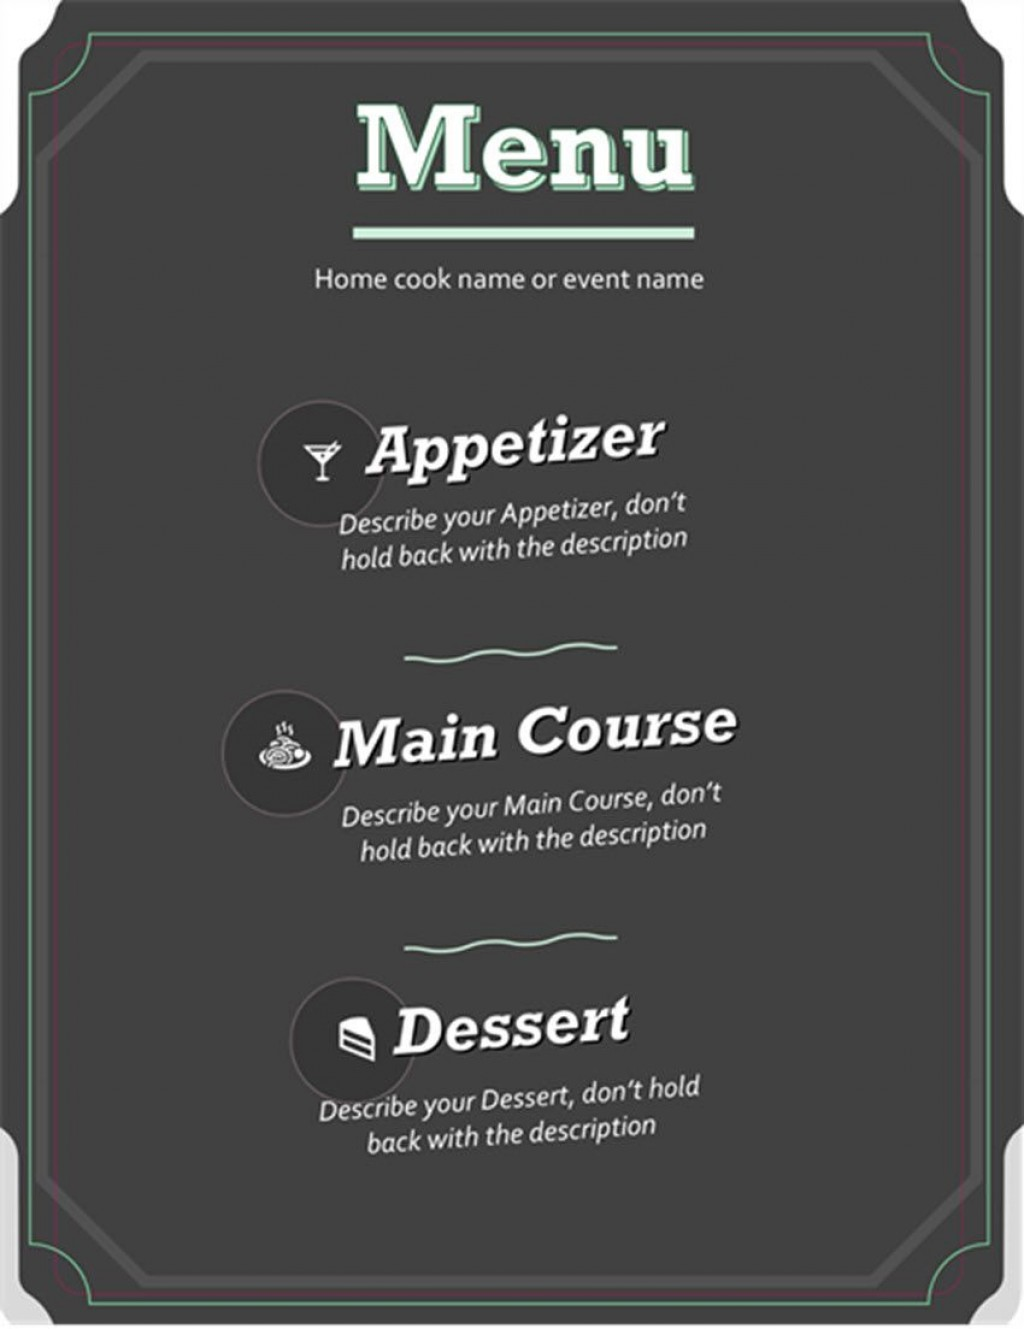 002 Excellent Menu Template Free Download For Restaurant Highest Clarity  Word PsdLarge